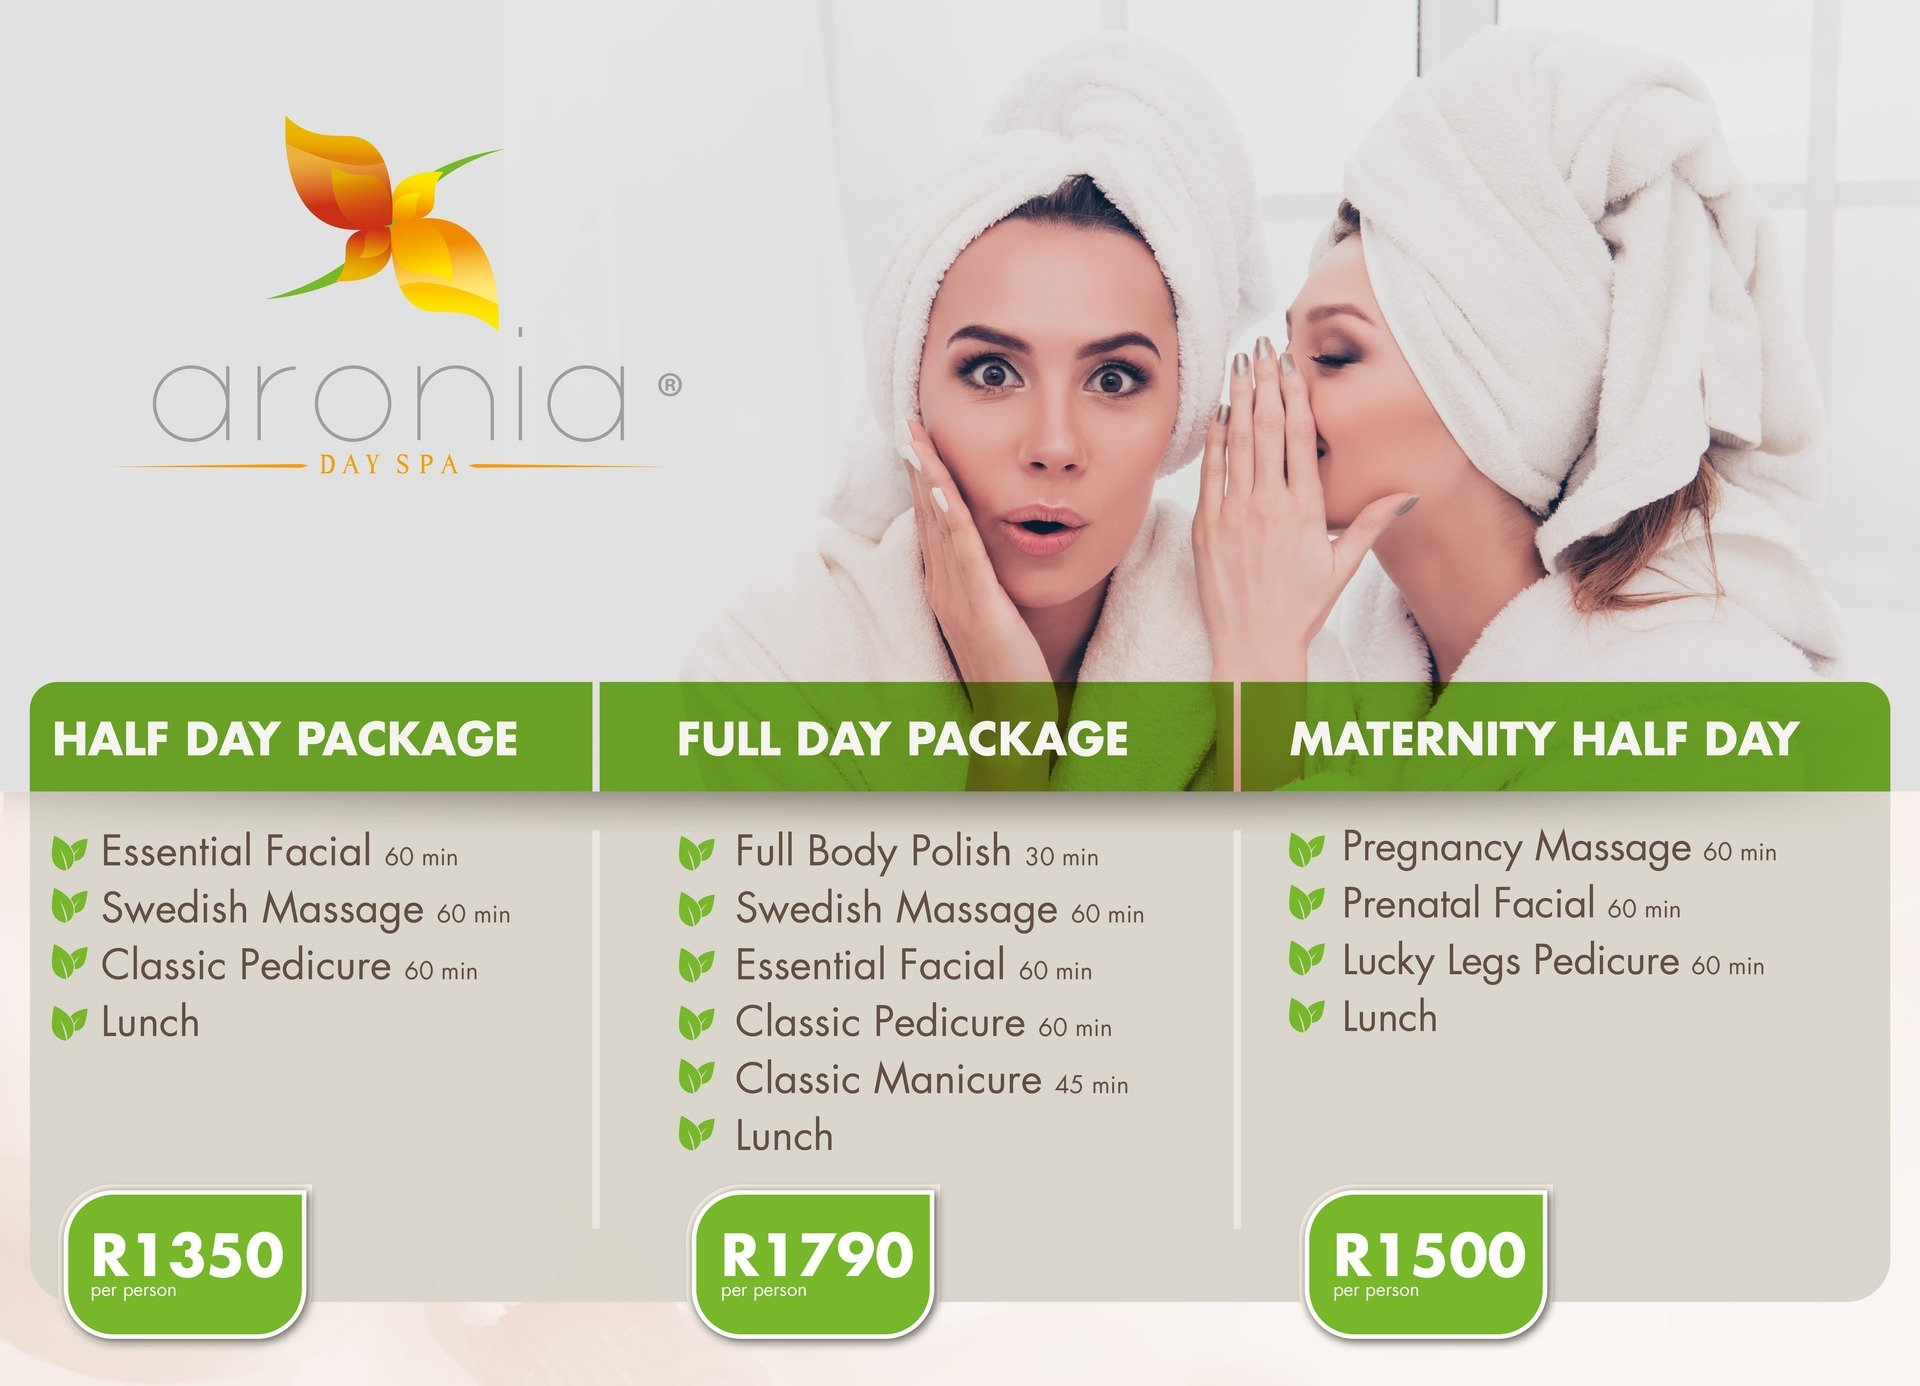 Aronia Spa Packages - Full Day, Half Day Couples and Pregnancy